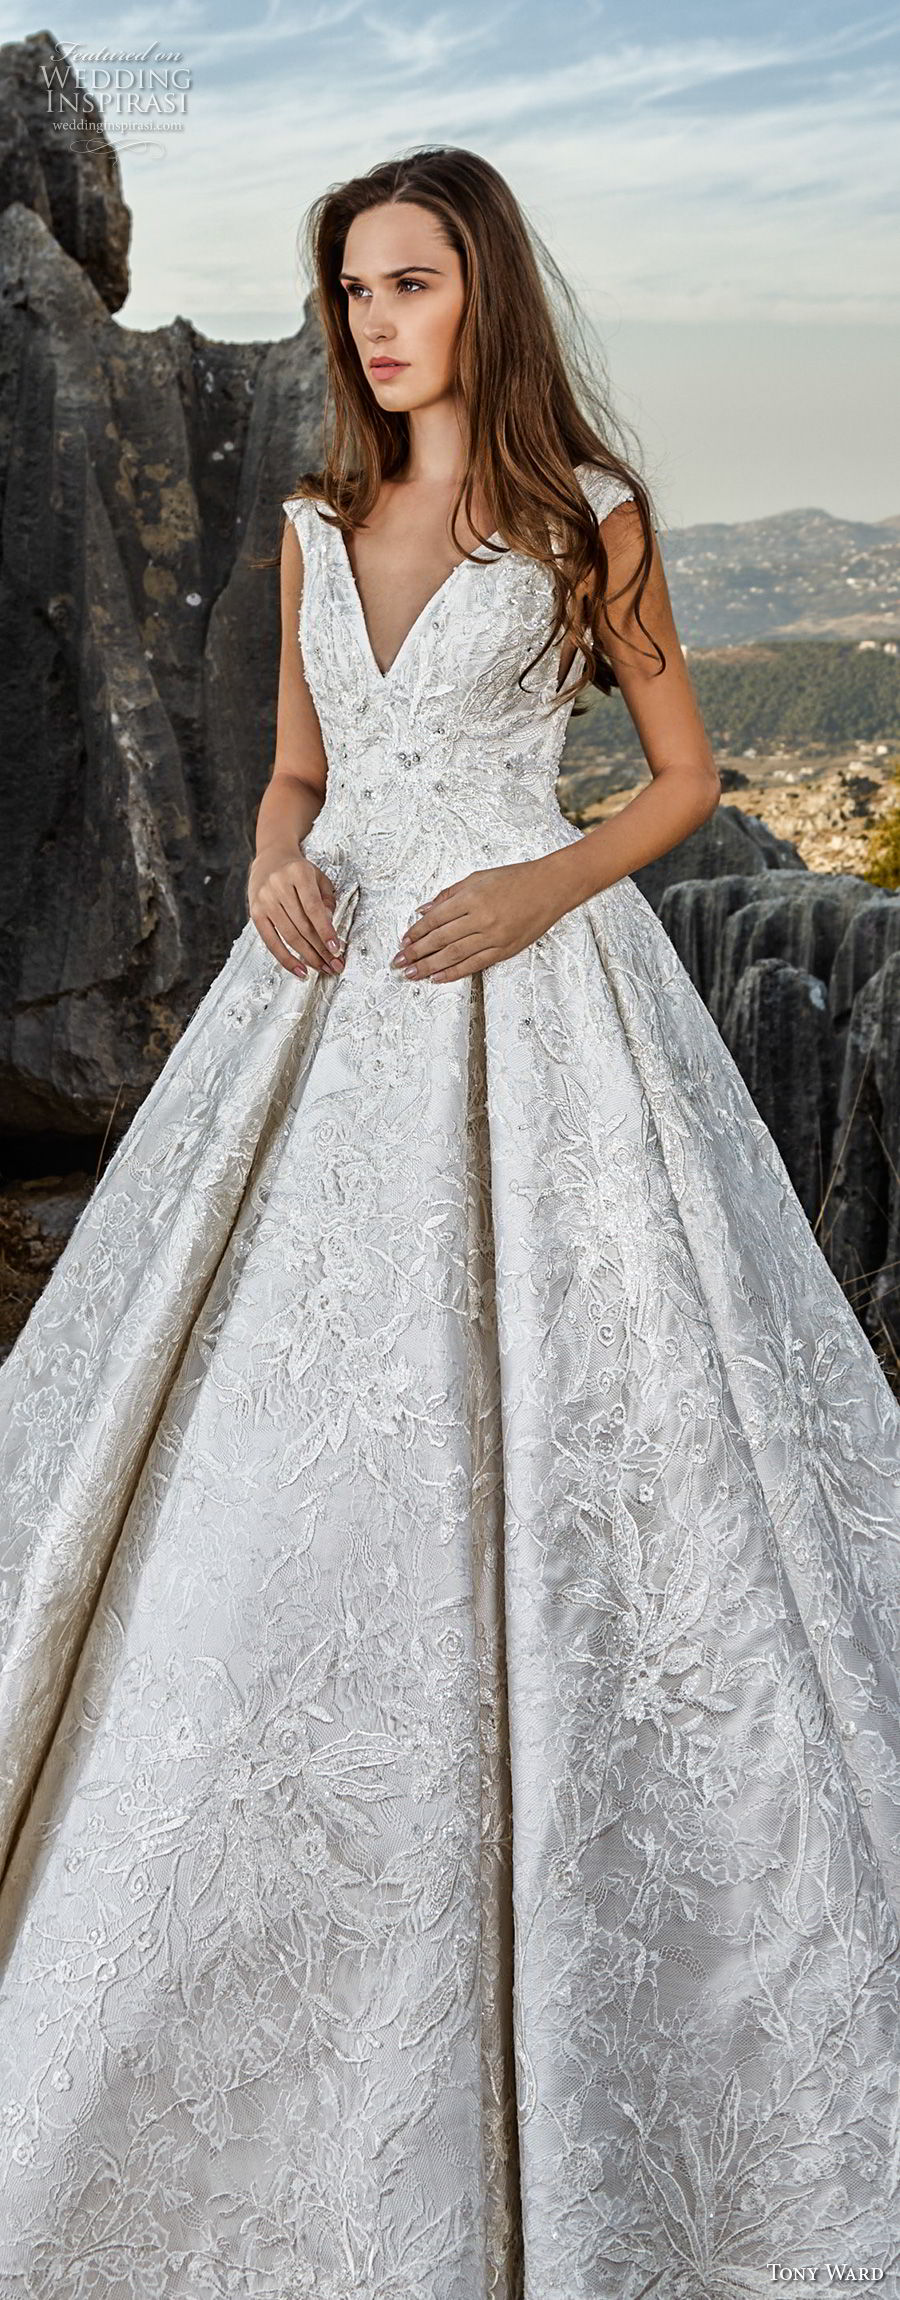 Tony Ward Wedding Dress Prices